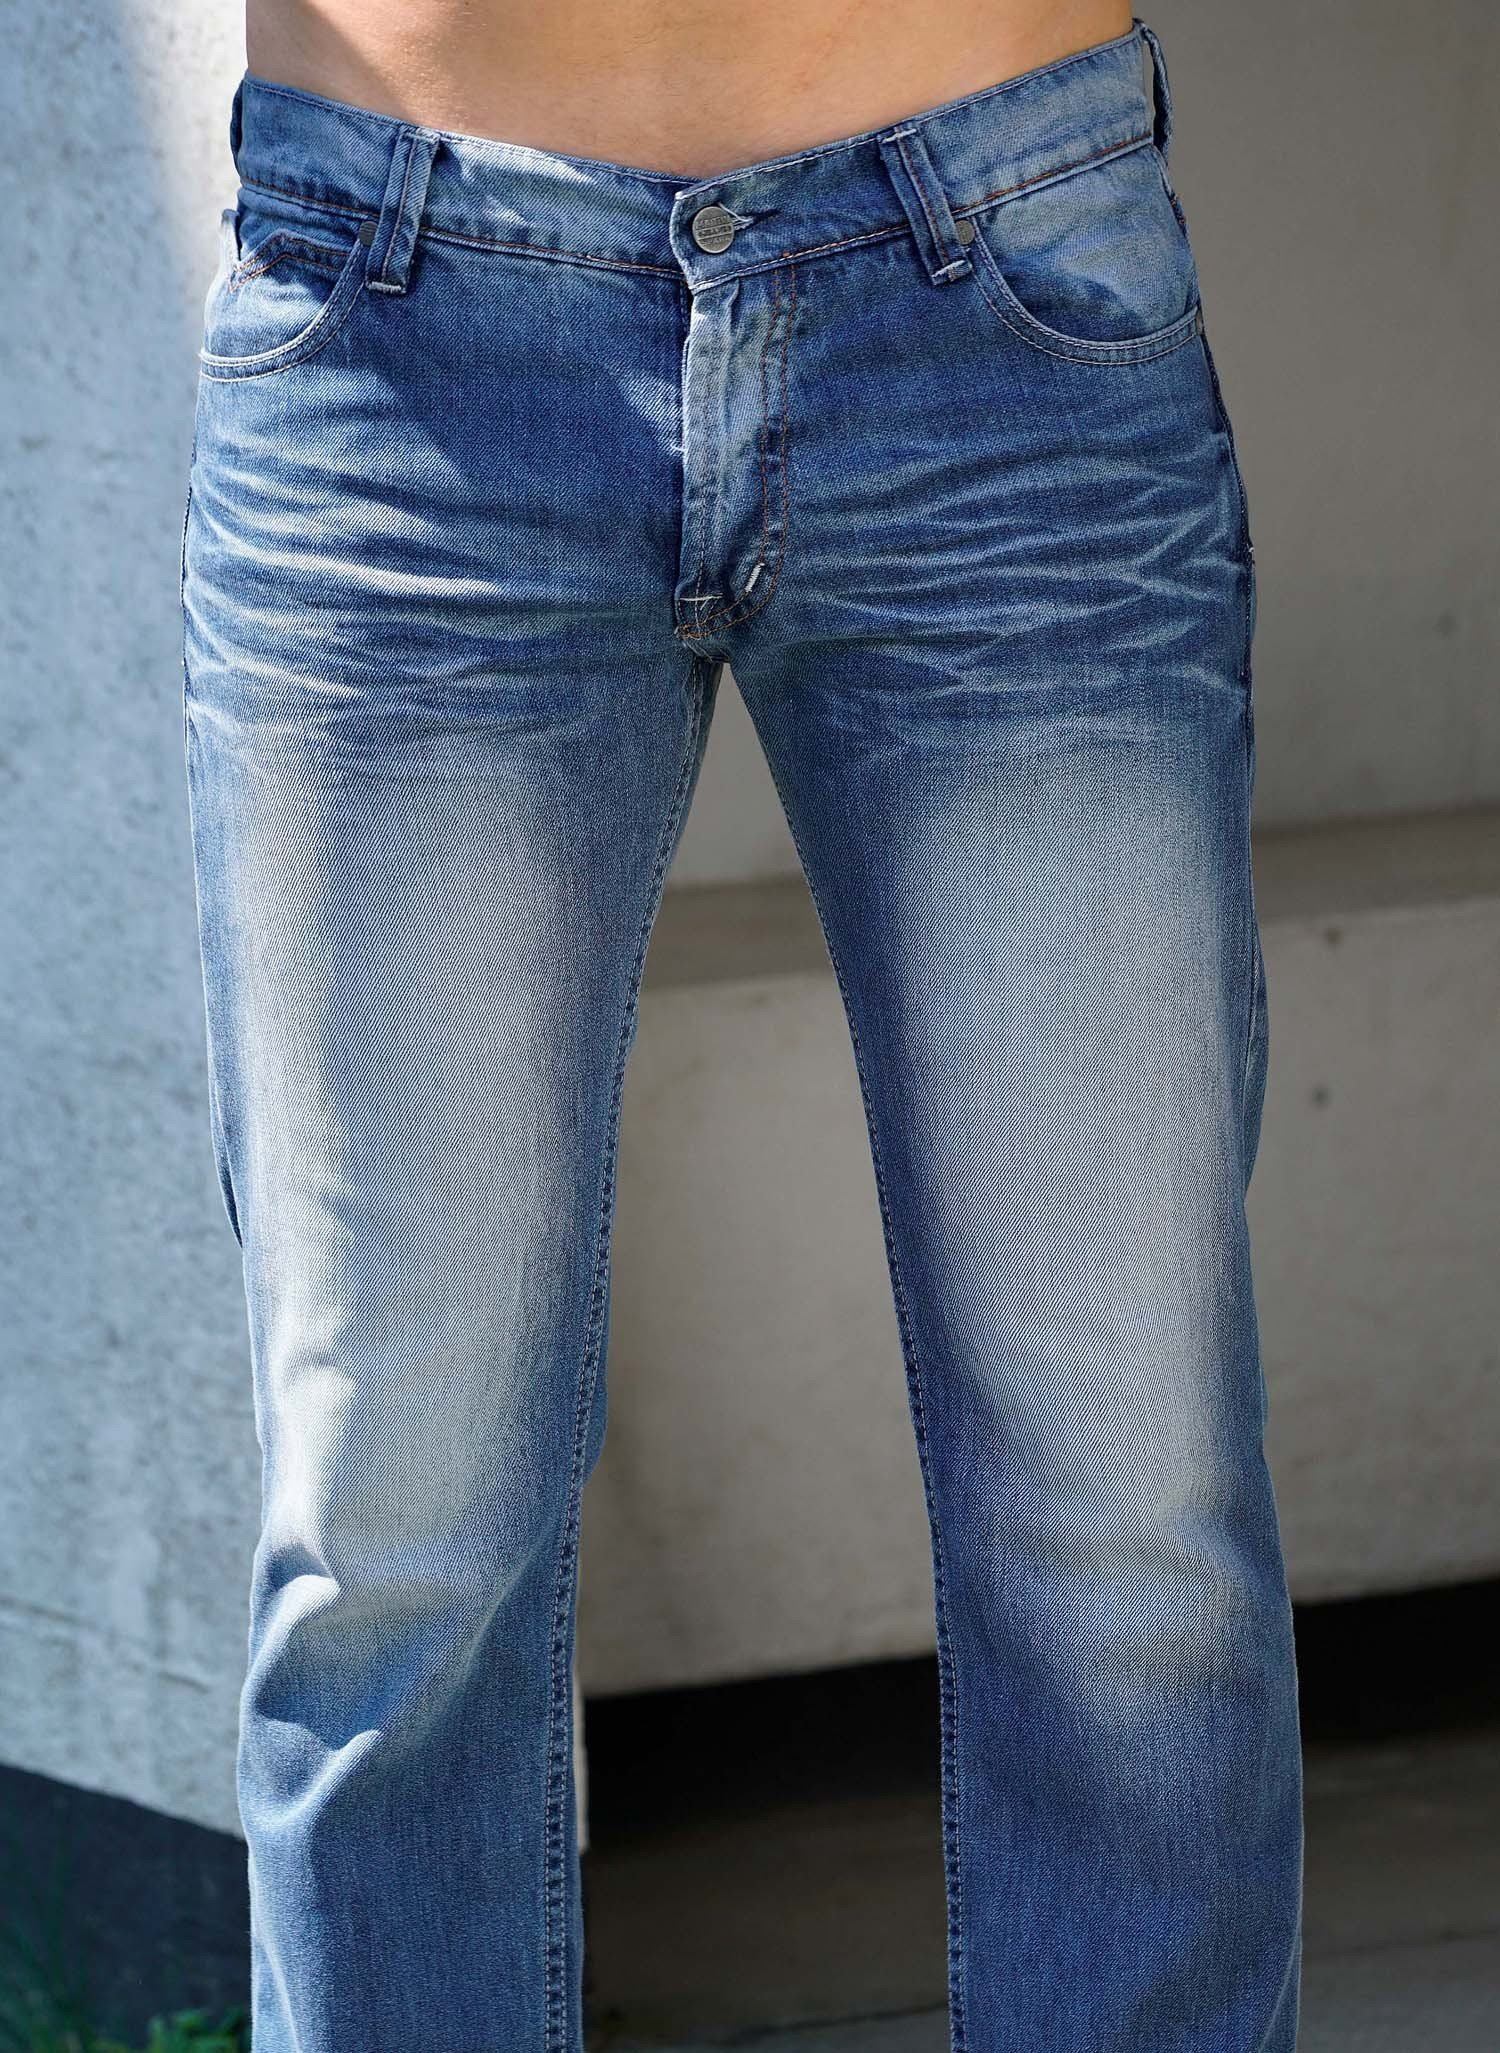 H-5P-Jeans,Stone-washed Blue-D 50 050 - 2 - Ronja.ch